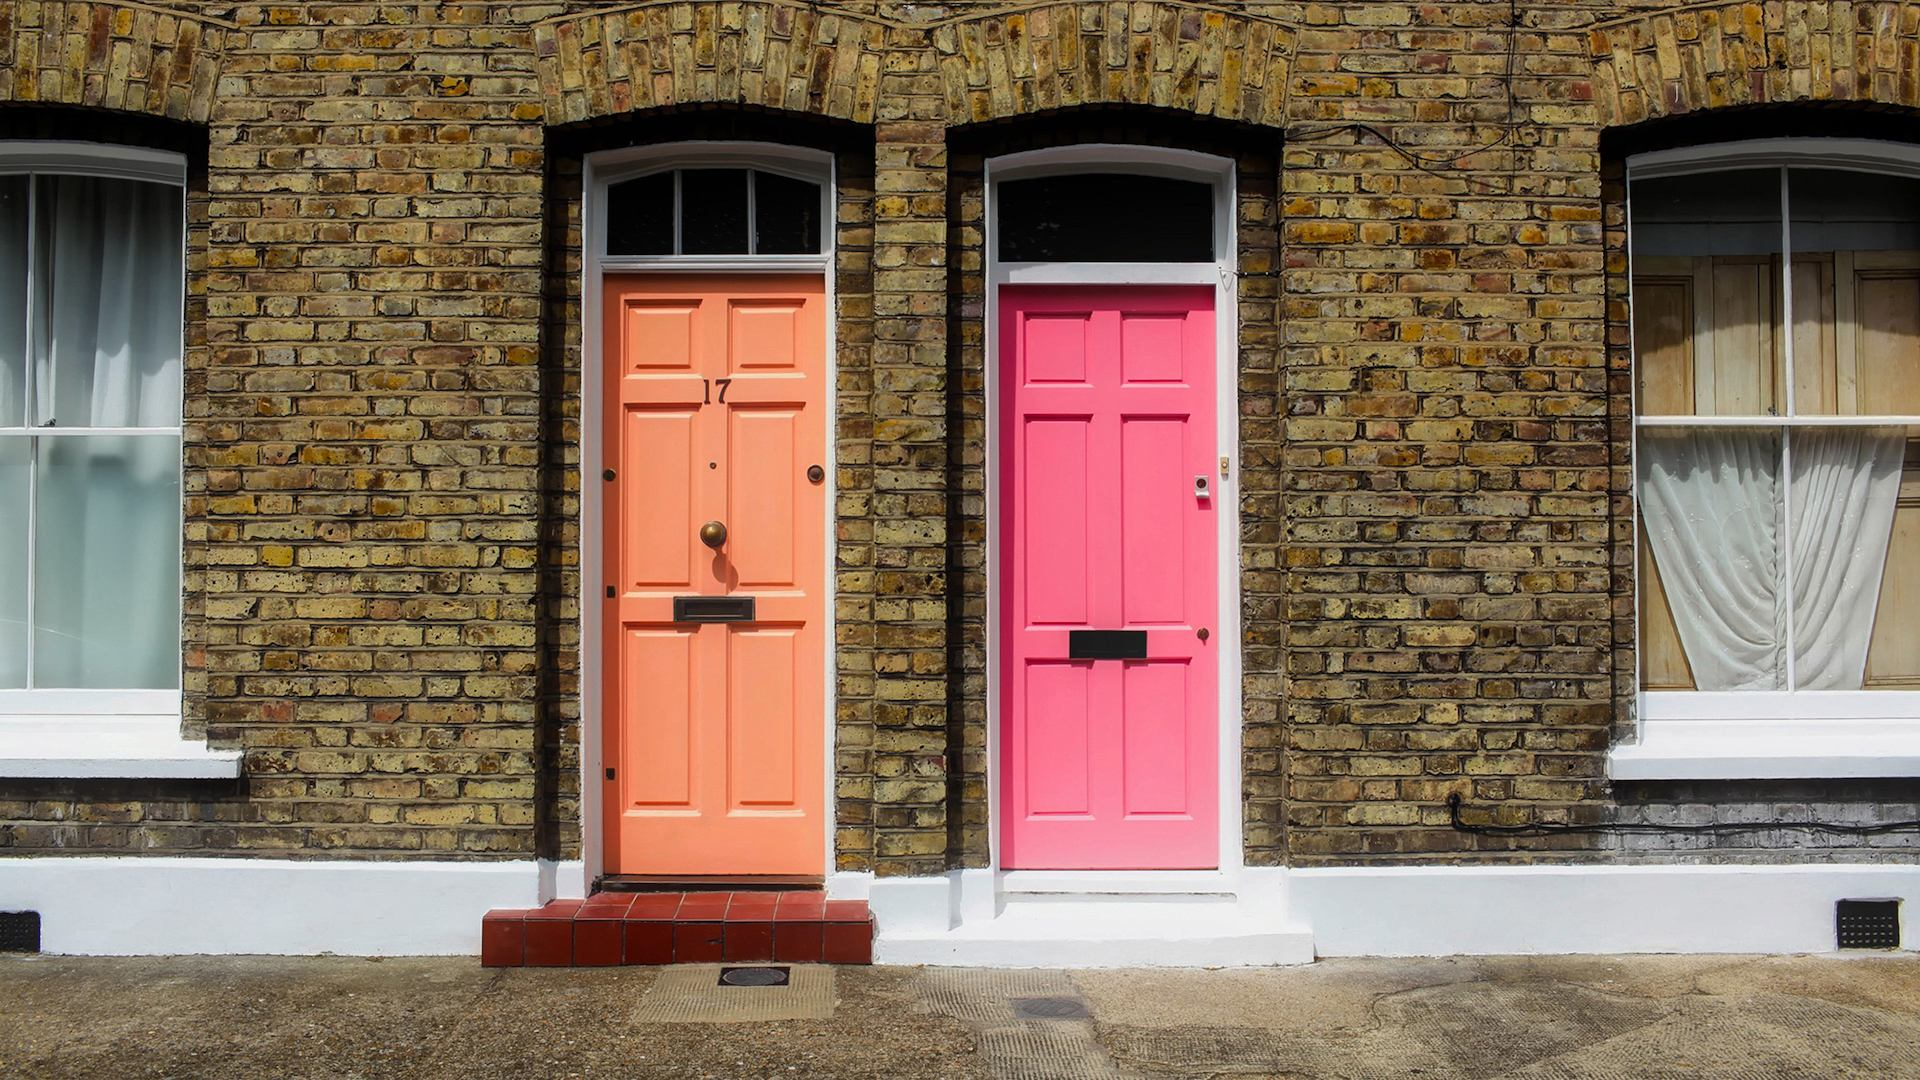 Terraced houses with orange and pink doors